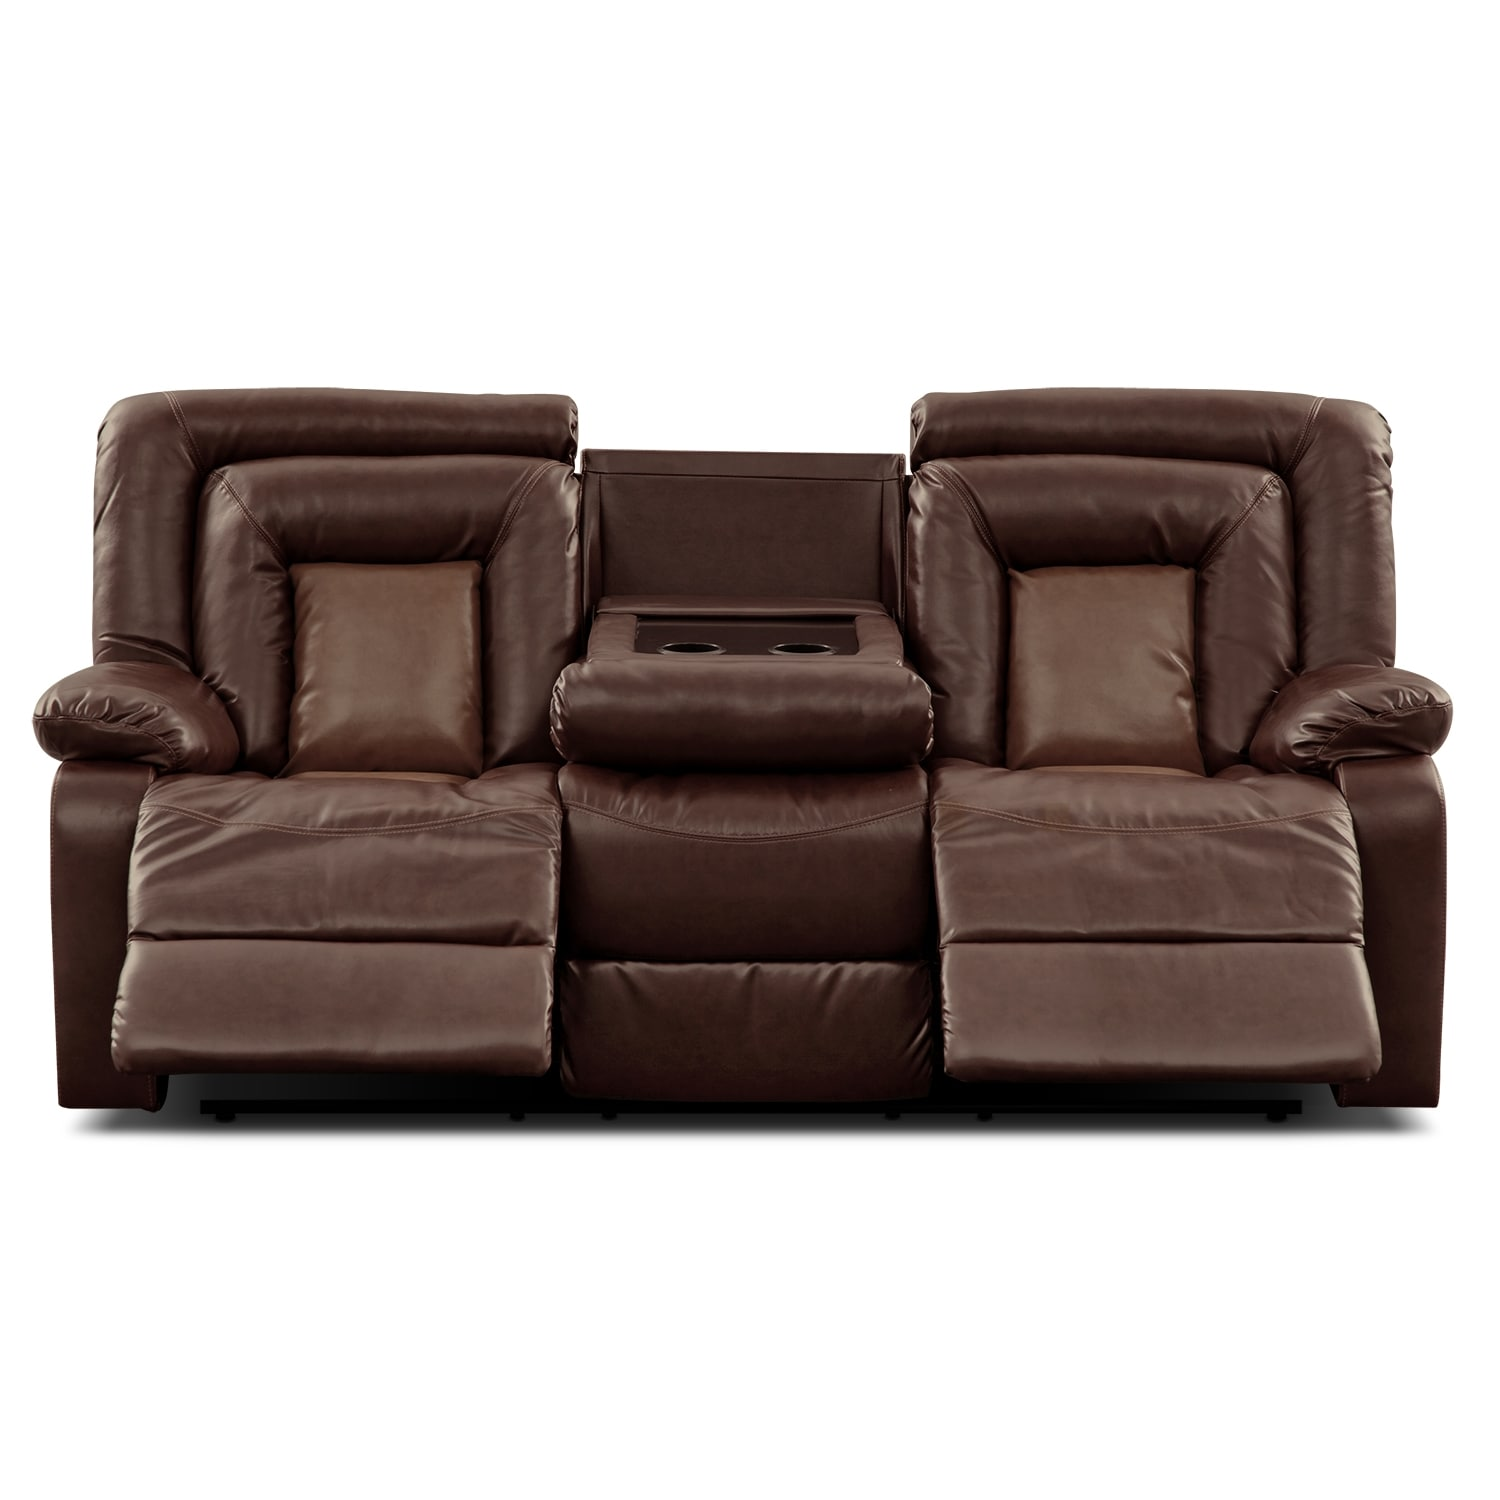 Ketchum reclining sofa Reclining leather sofa and loveseat